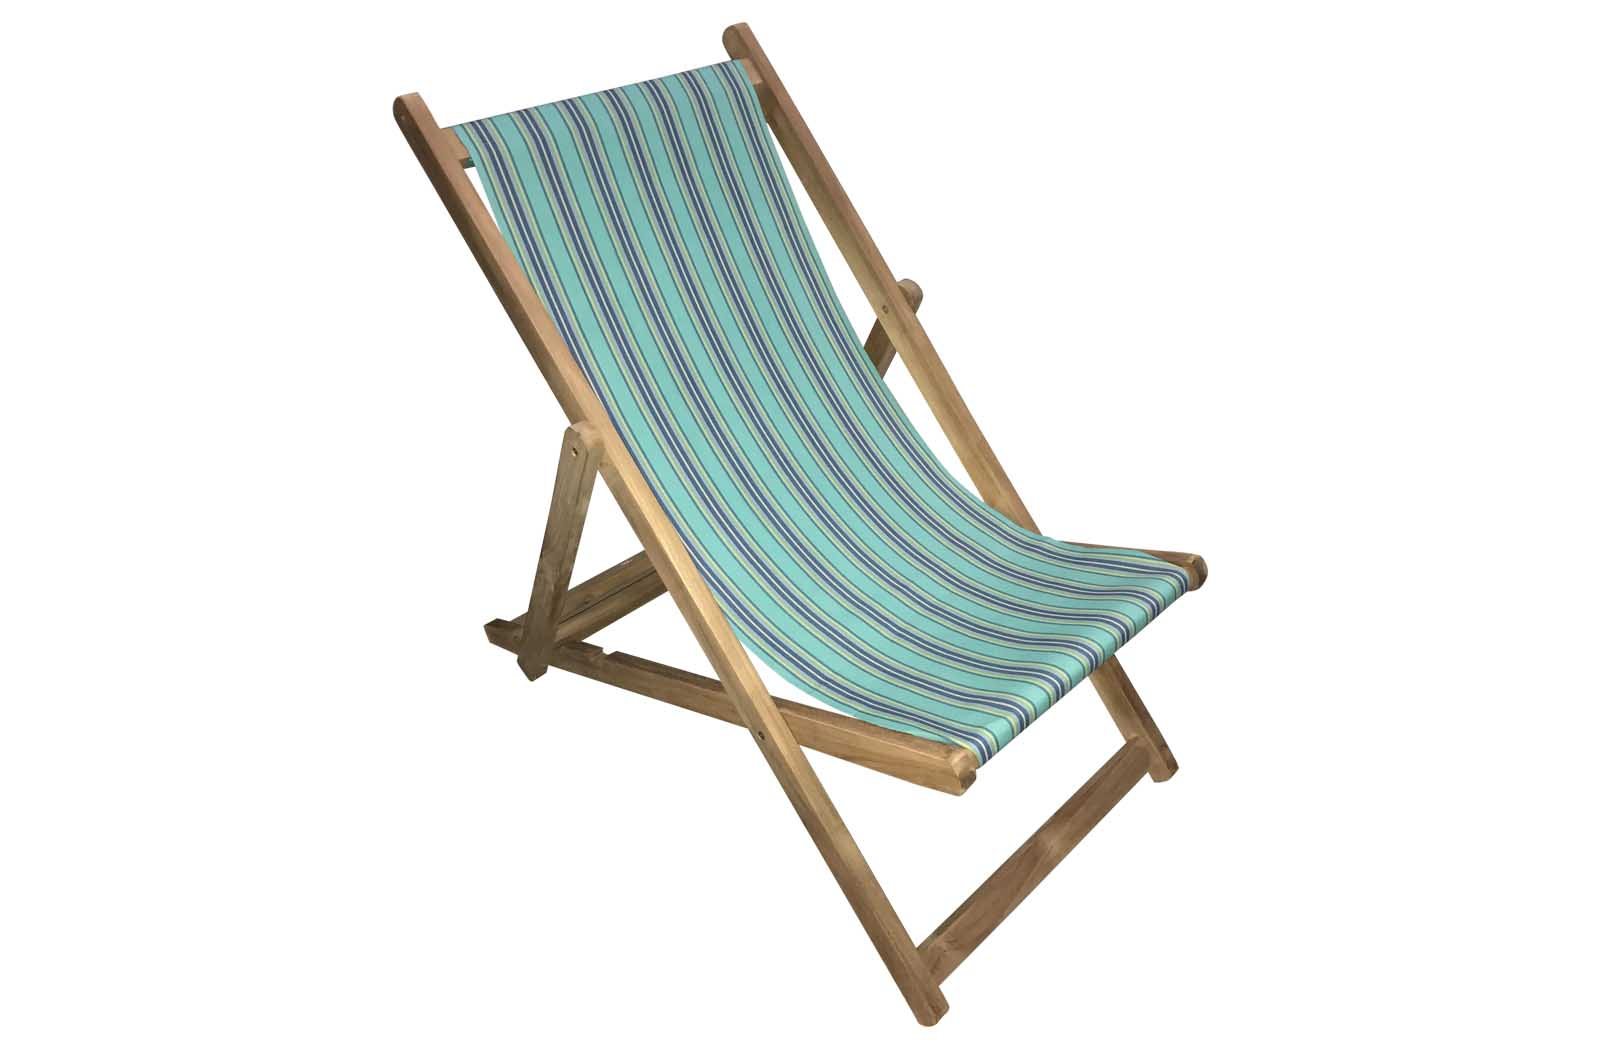 Turquoise Navy Stripe Deckchairs | Wooden Folding Deck Chairs Fencing Stripes